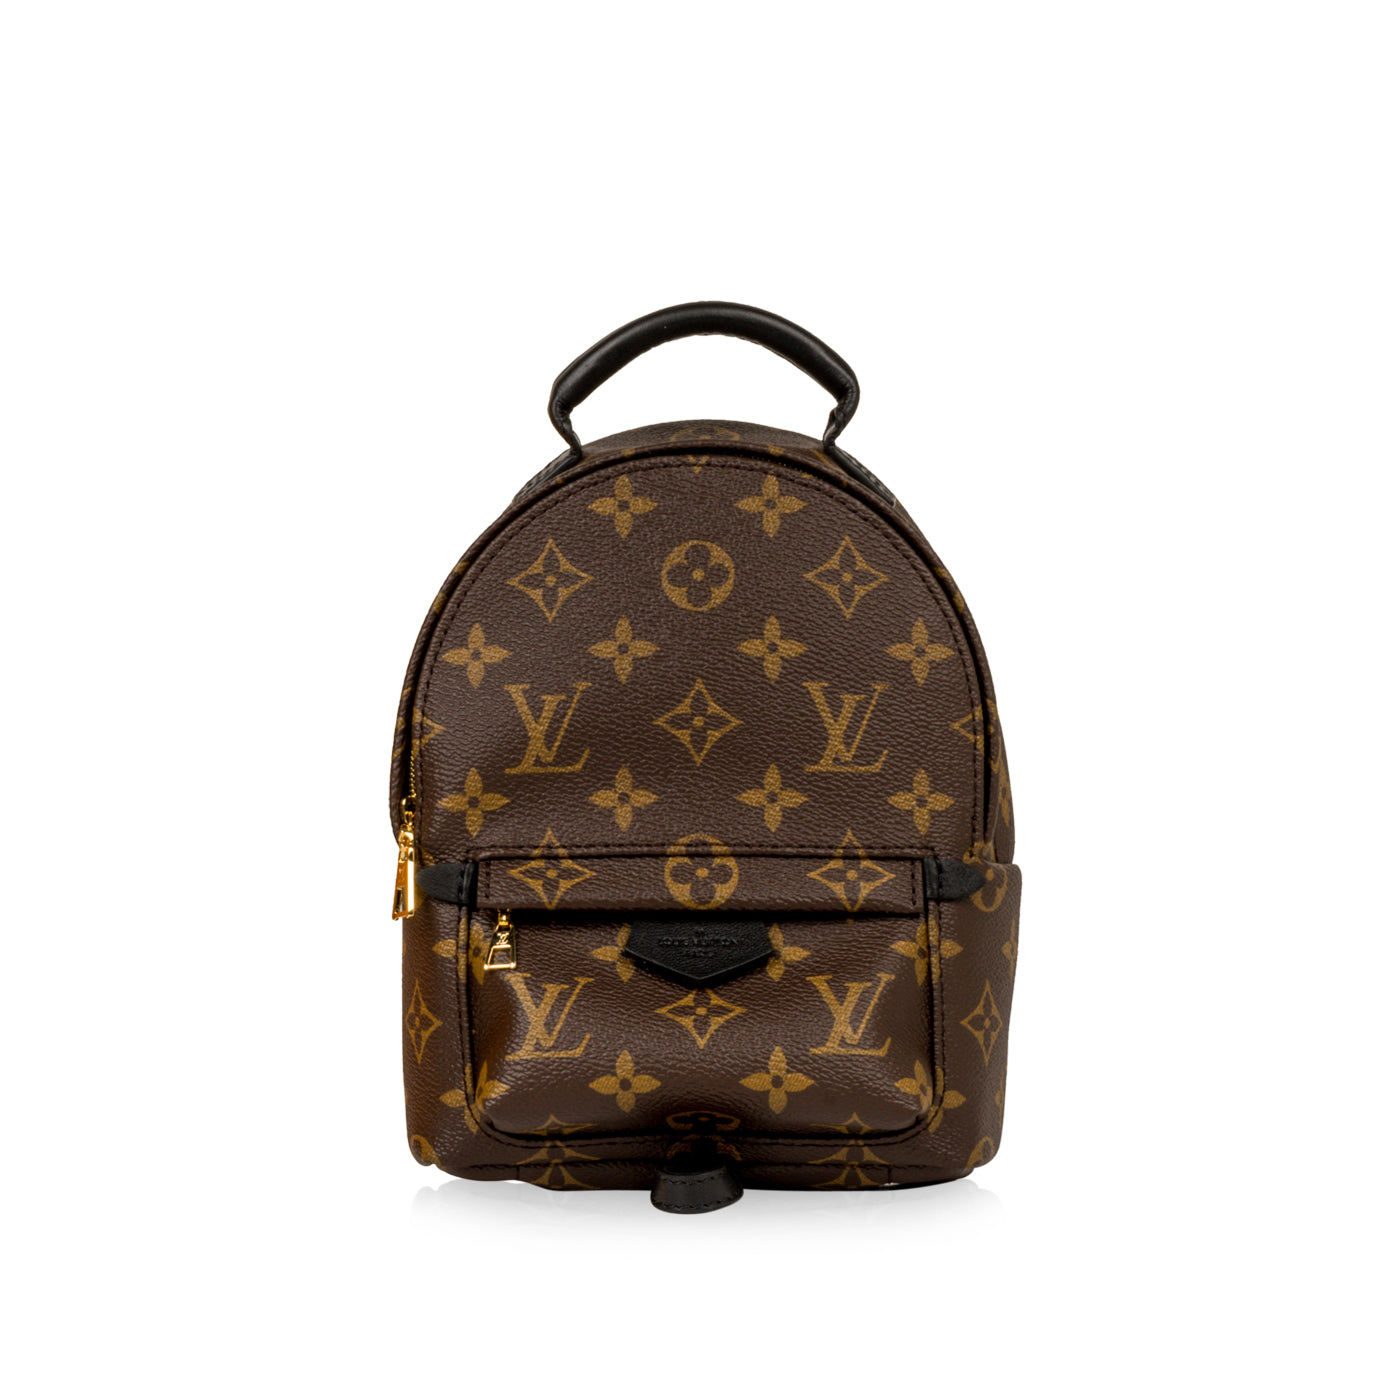 0f27545ff913d Louis Vuitton - Palm Springs Backpack Mini - New | Bagista